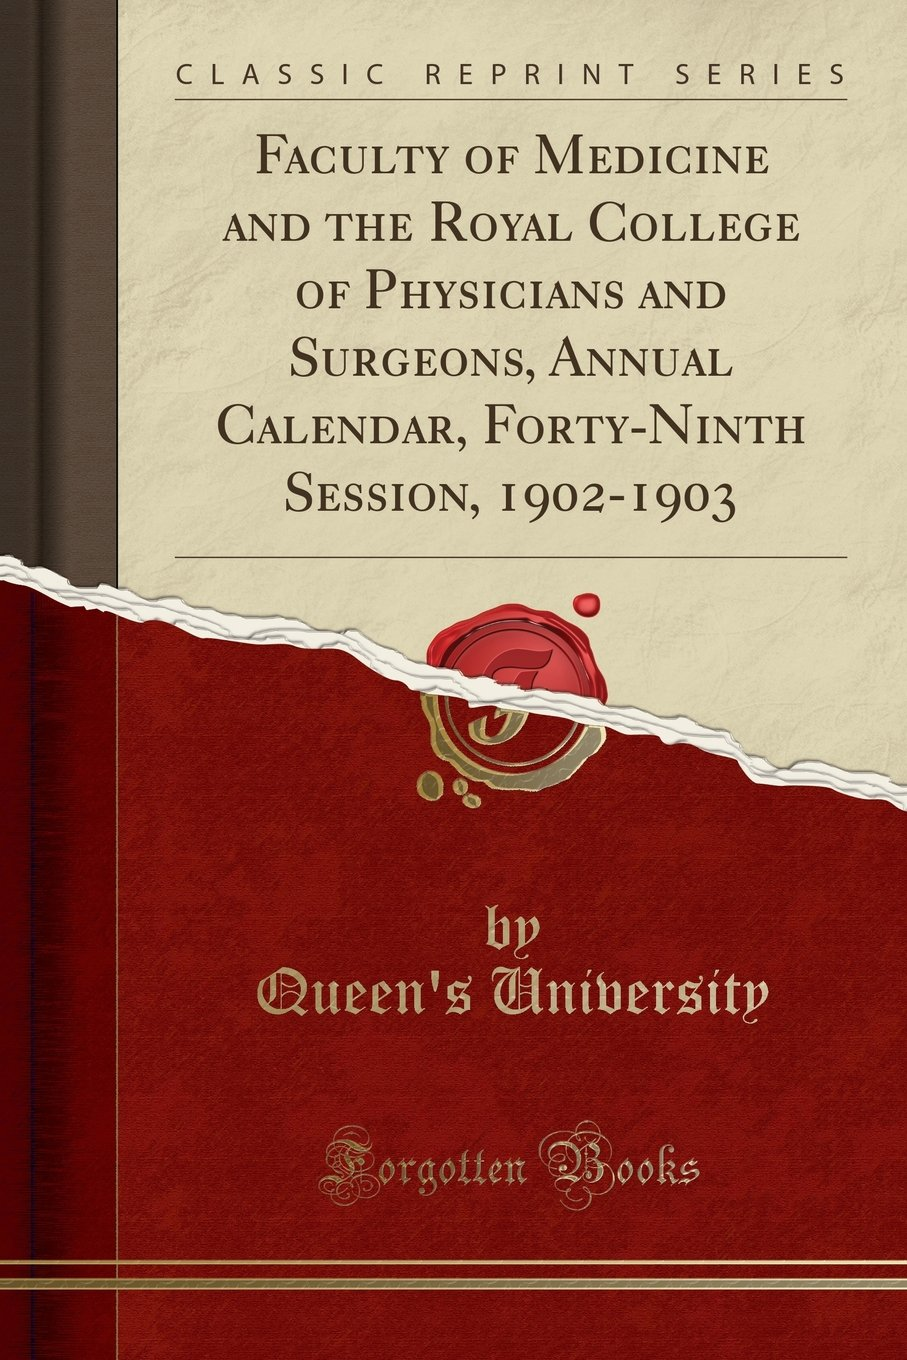 Faculty of Medicine and the Royal College of Physicians and Surgeons, Annual Calendar, Forty-Ninth Session, 1902-1903 (Classic Reprint) PDF